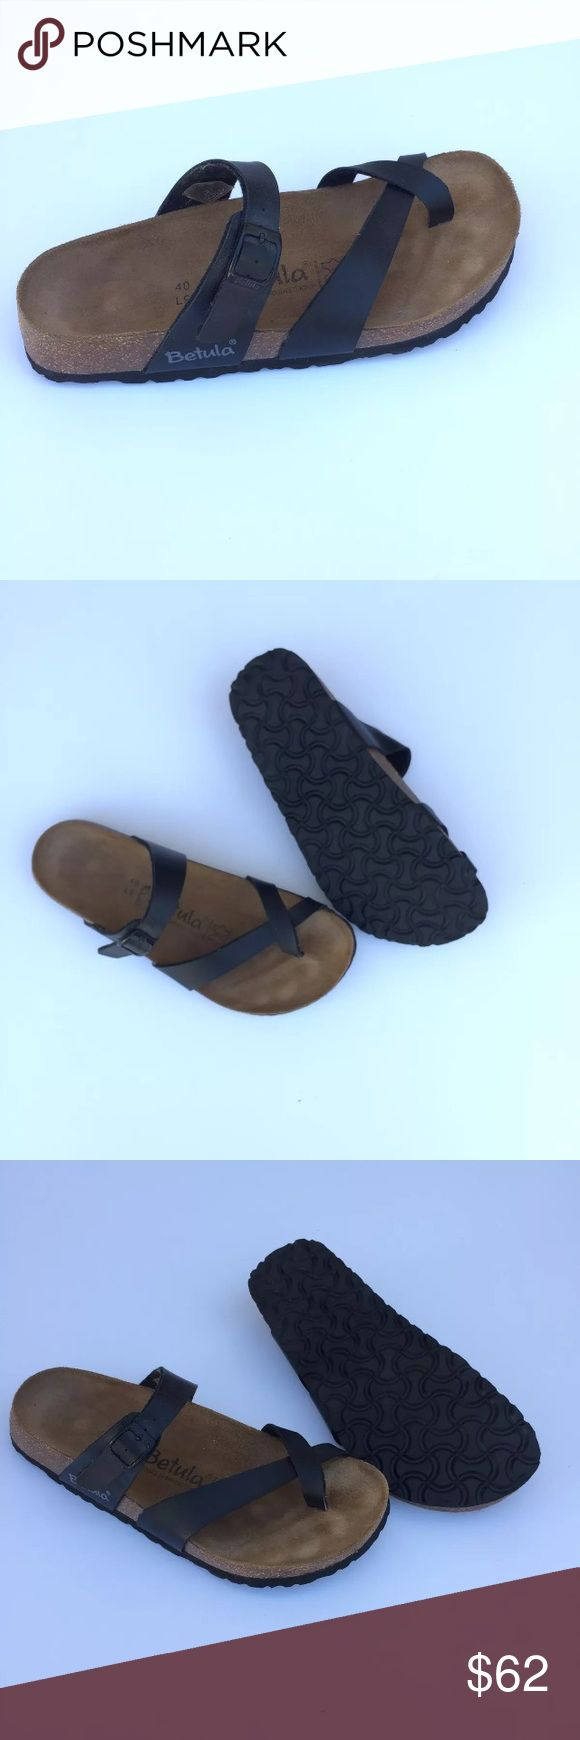 Birkenstock Betula Sandals Slide Toe Loop Ring 40 Betula Birkenstock Sandals Size 40 -- Poshmark US to EU conversions don't always match up.  Check Birkenstock size charts to make sure the 40 is the right size for your American size Black Mia Excellent condition Birkenstock Shoes Sandals